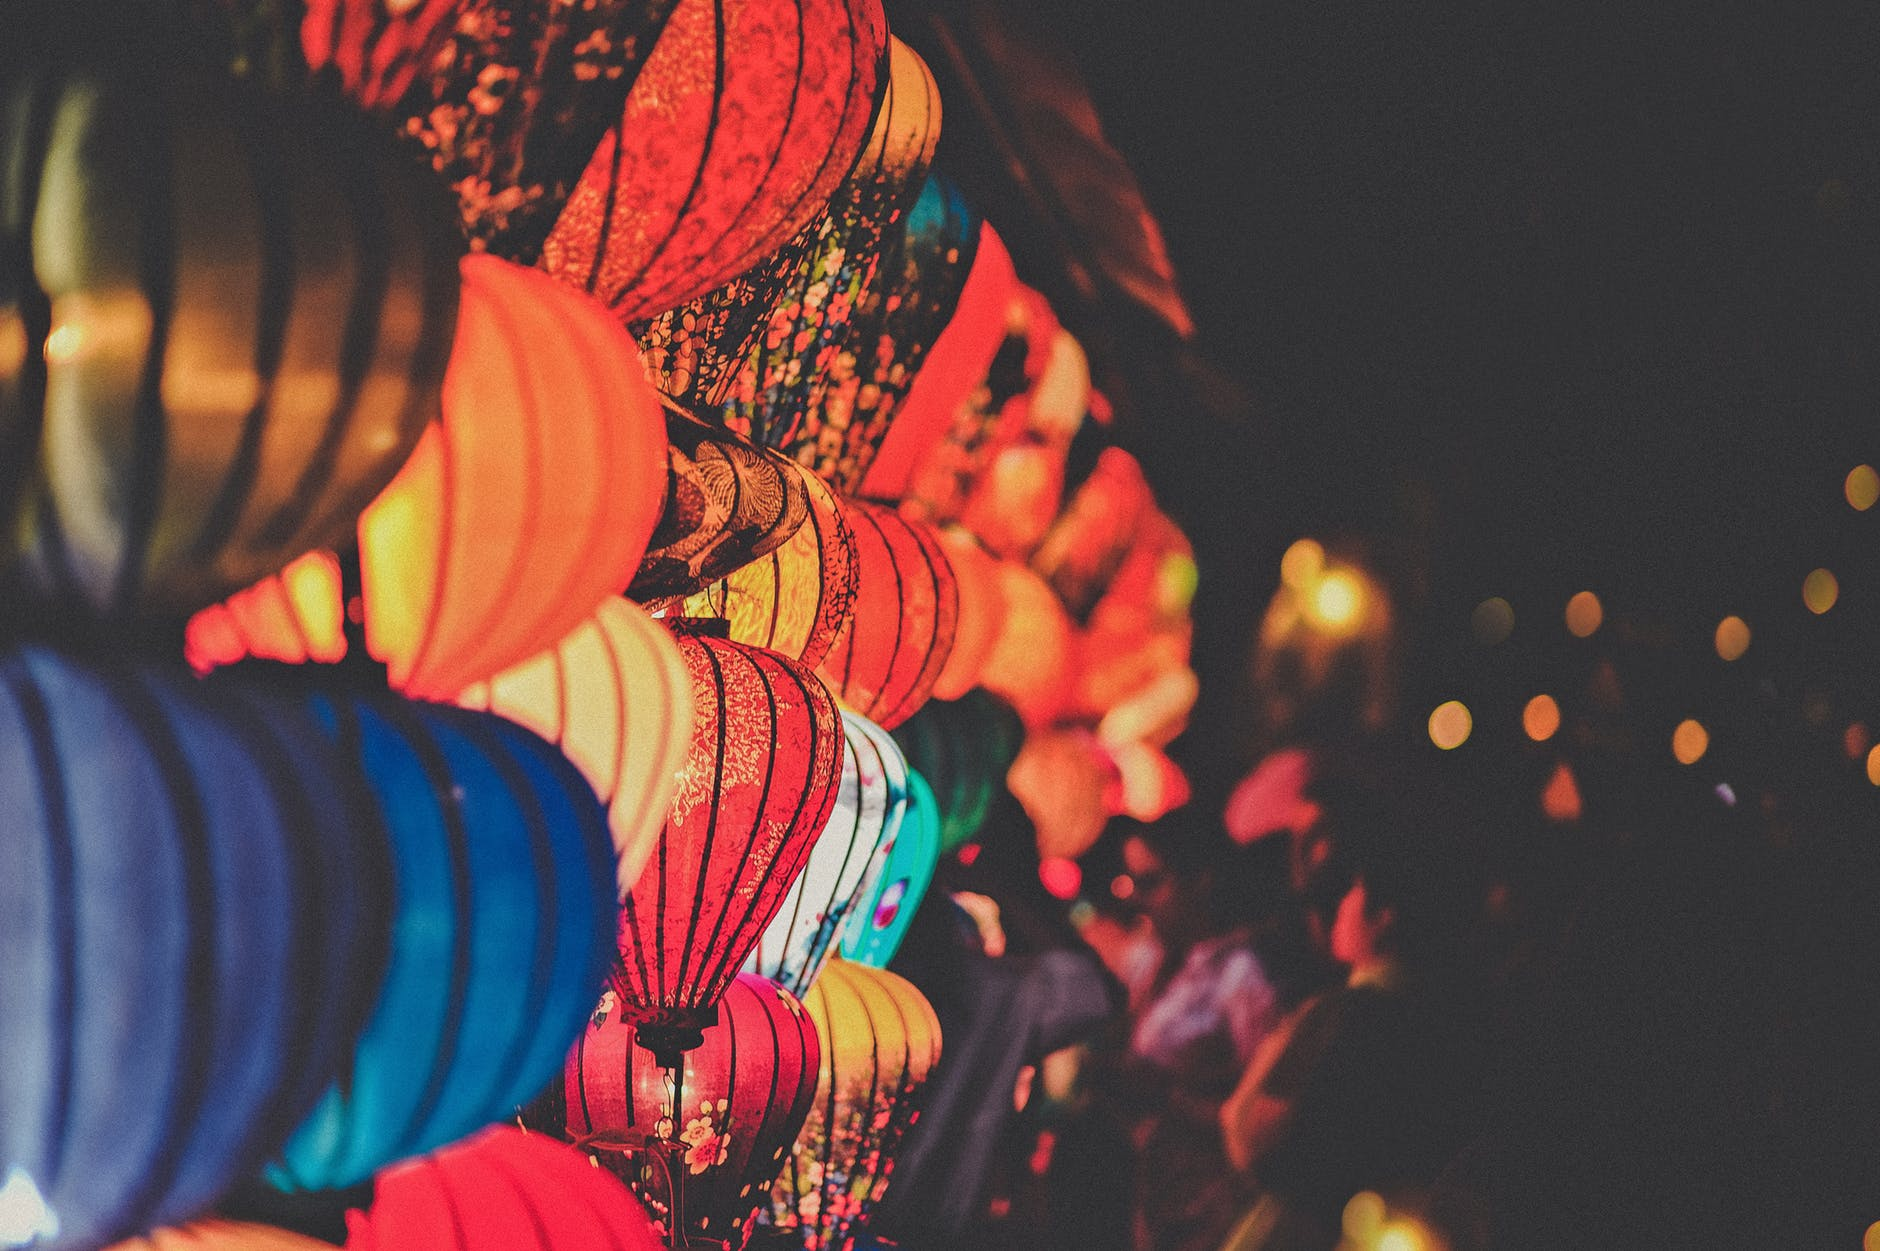 Selective focus photography of paper lanterns